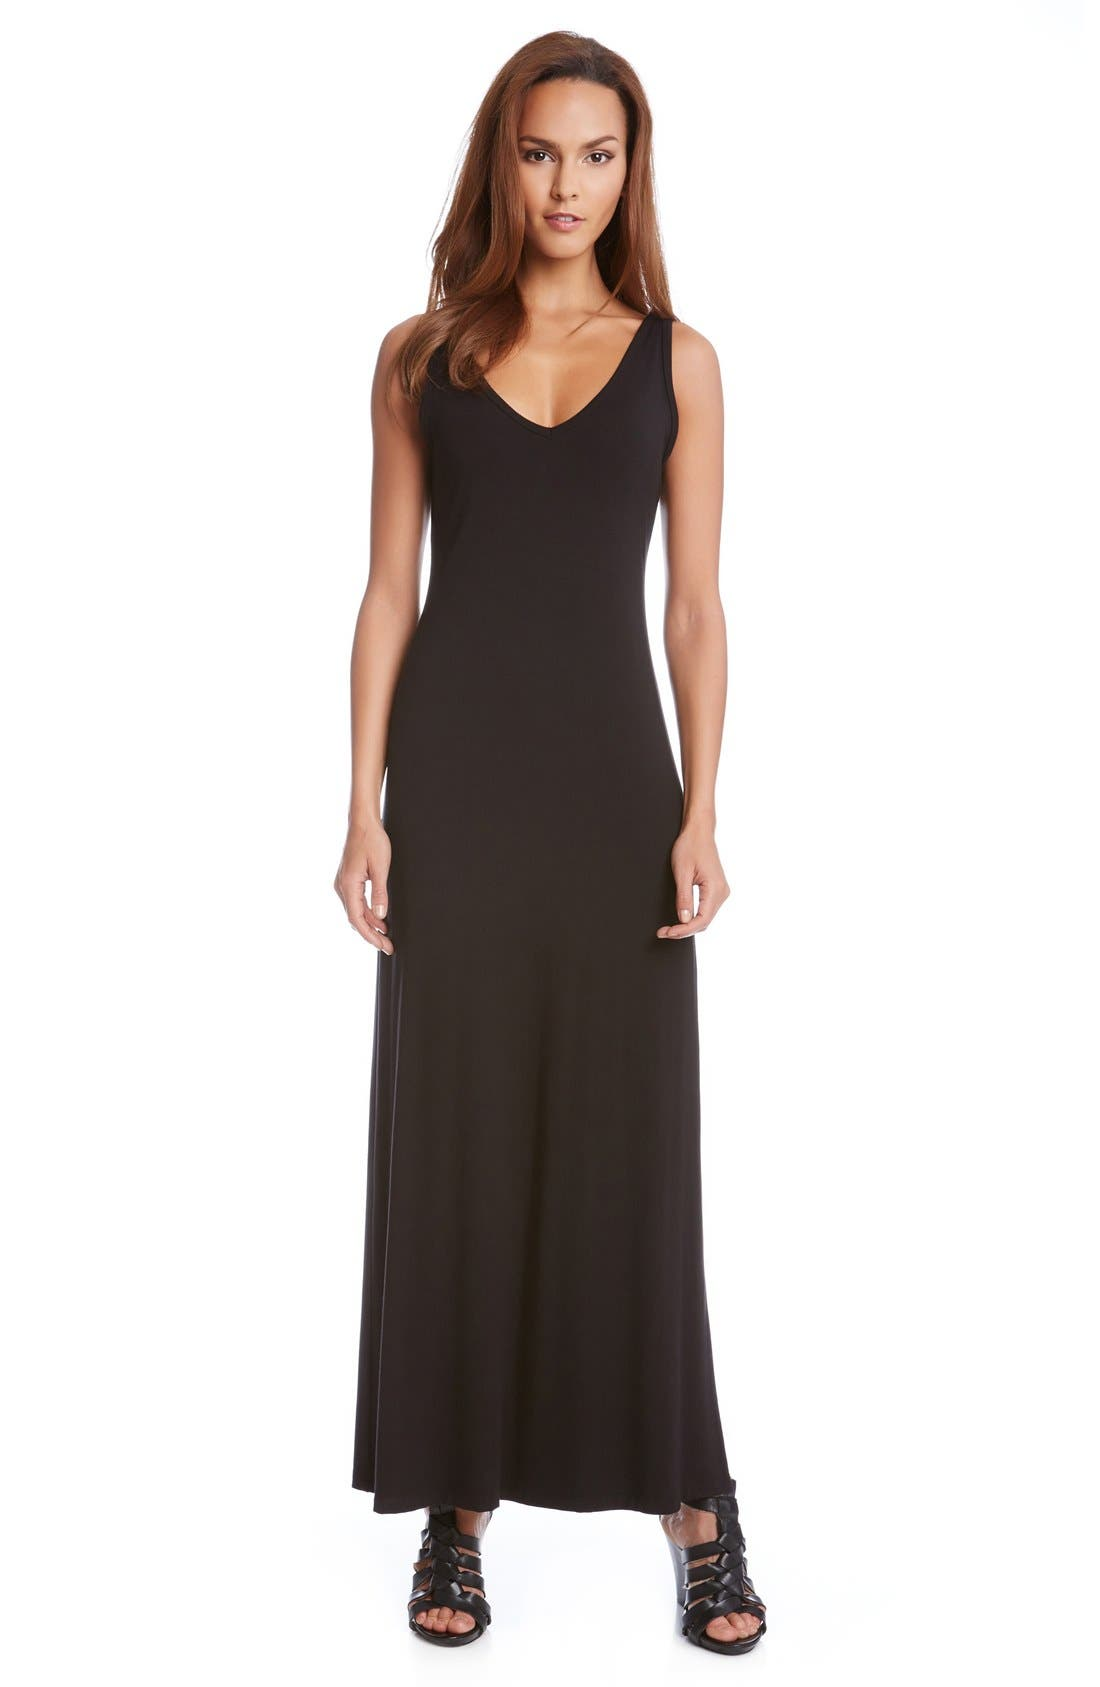 Alternate Image 1 Selected - Karen Kane 'Alana' Double V-Neck Maxi Dress